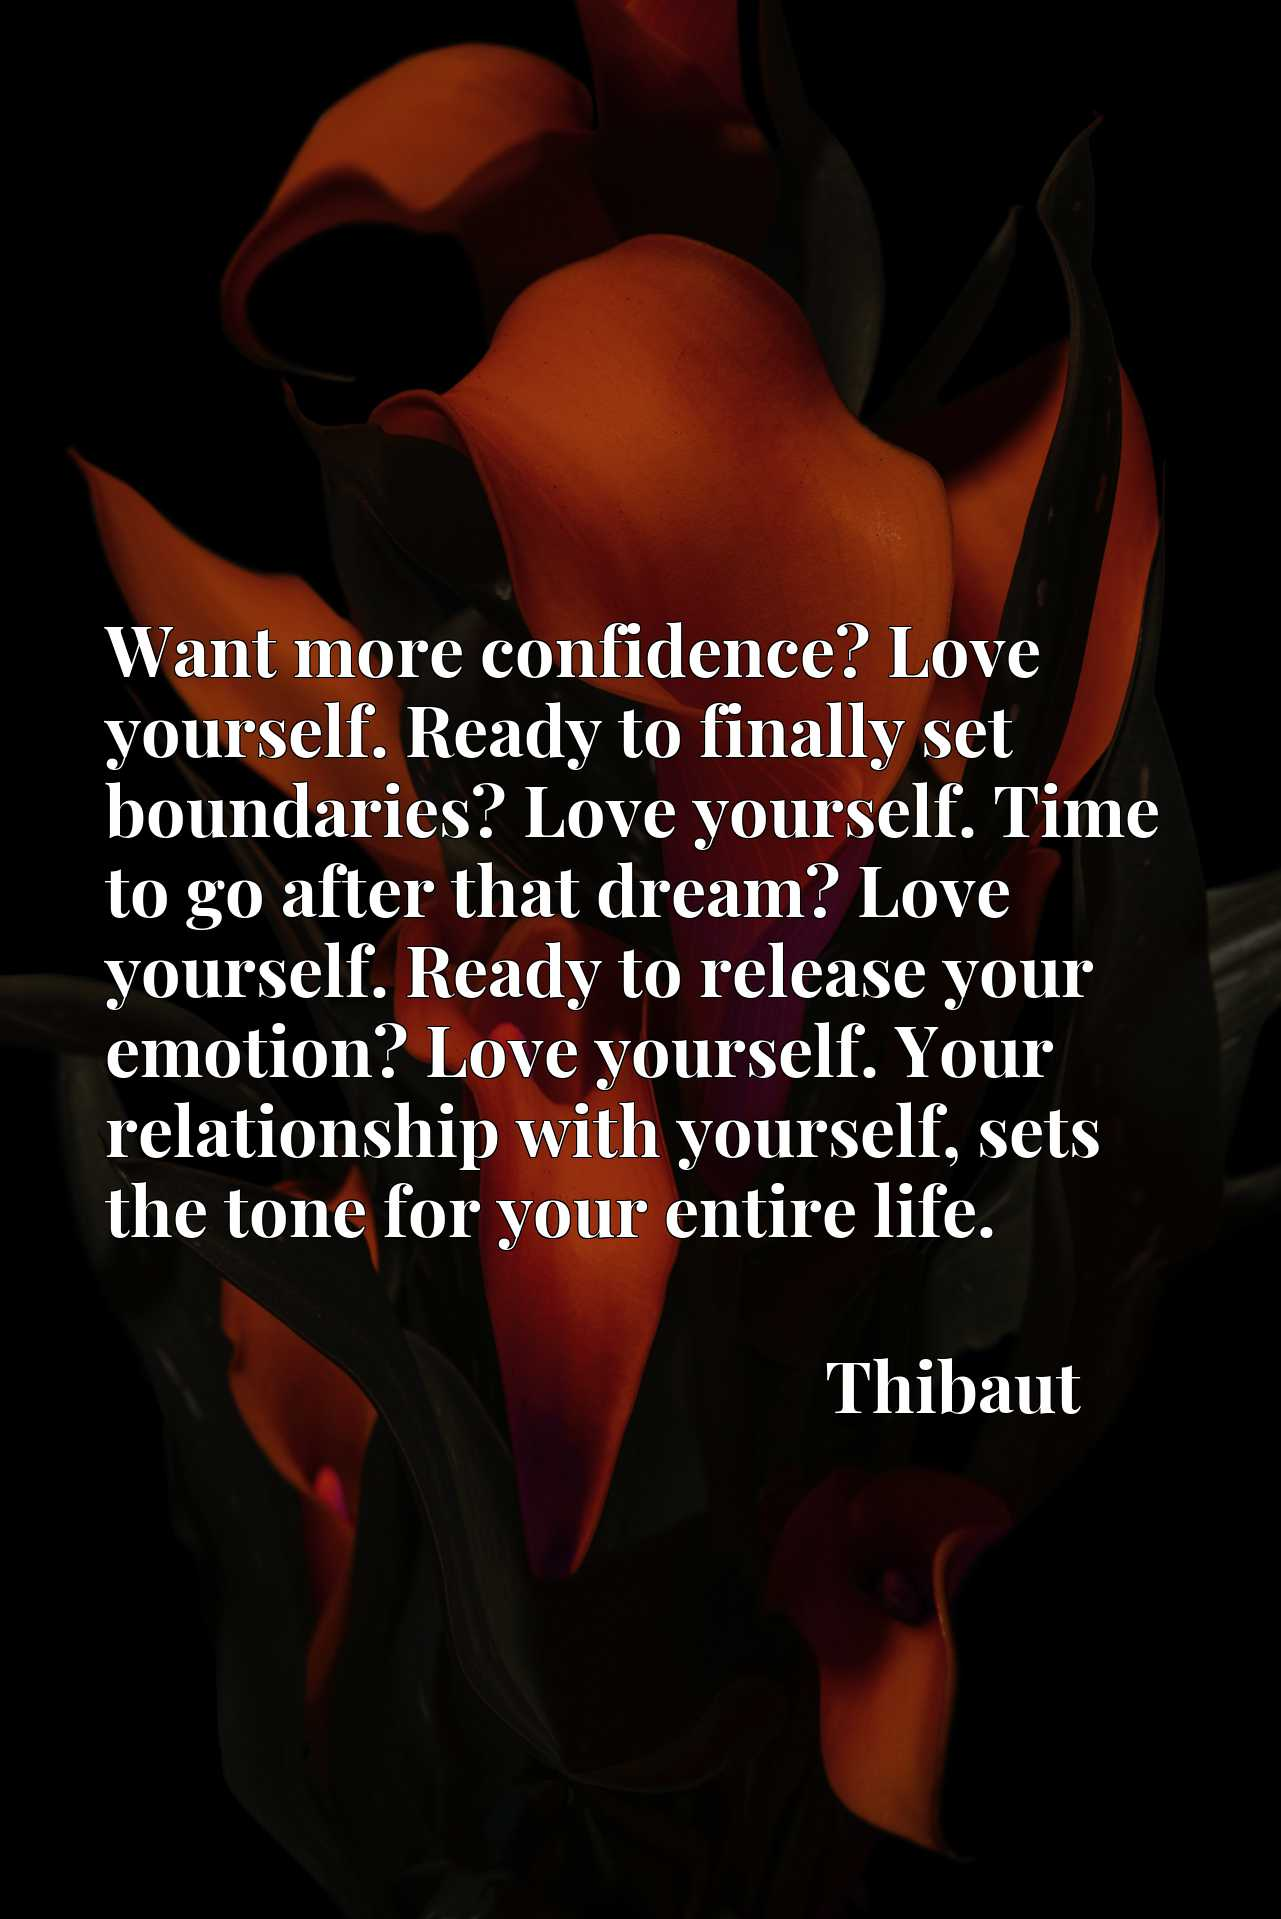 Want more confidence? Love yourself. Ready to finally set boundaries? Love yourself. Time to go after that dream? Love yourself. Ready to release your emotion? Love yourself. Your relationship with yourself, sets the tone for your entire life.